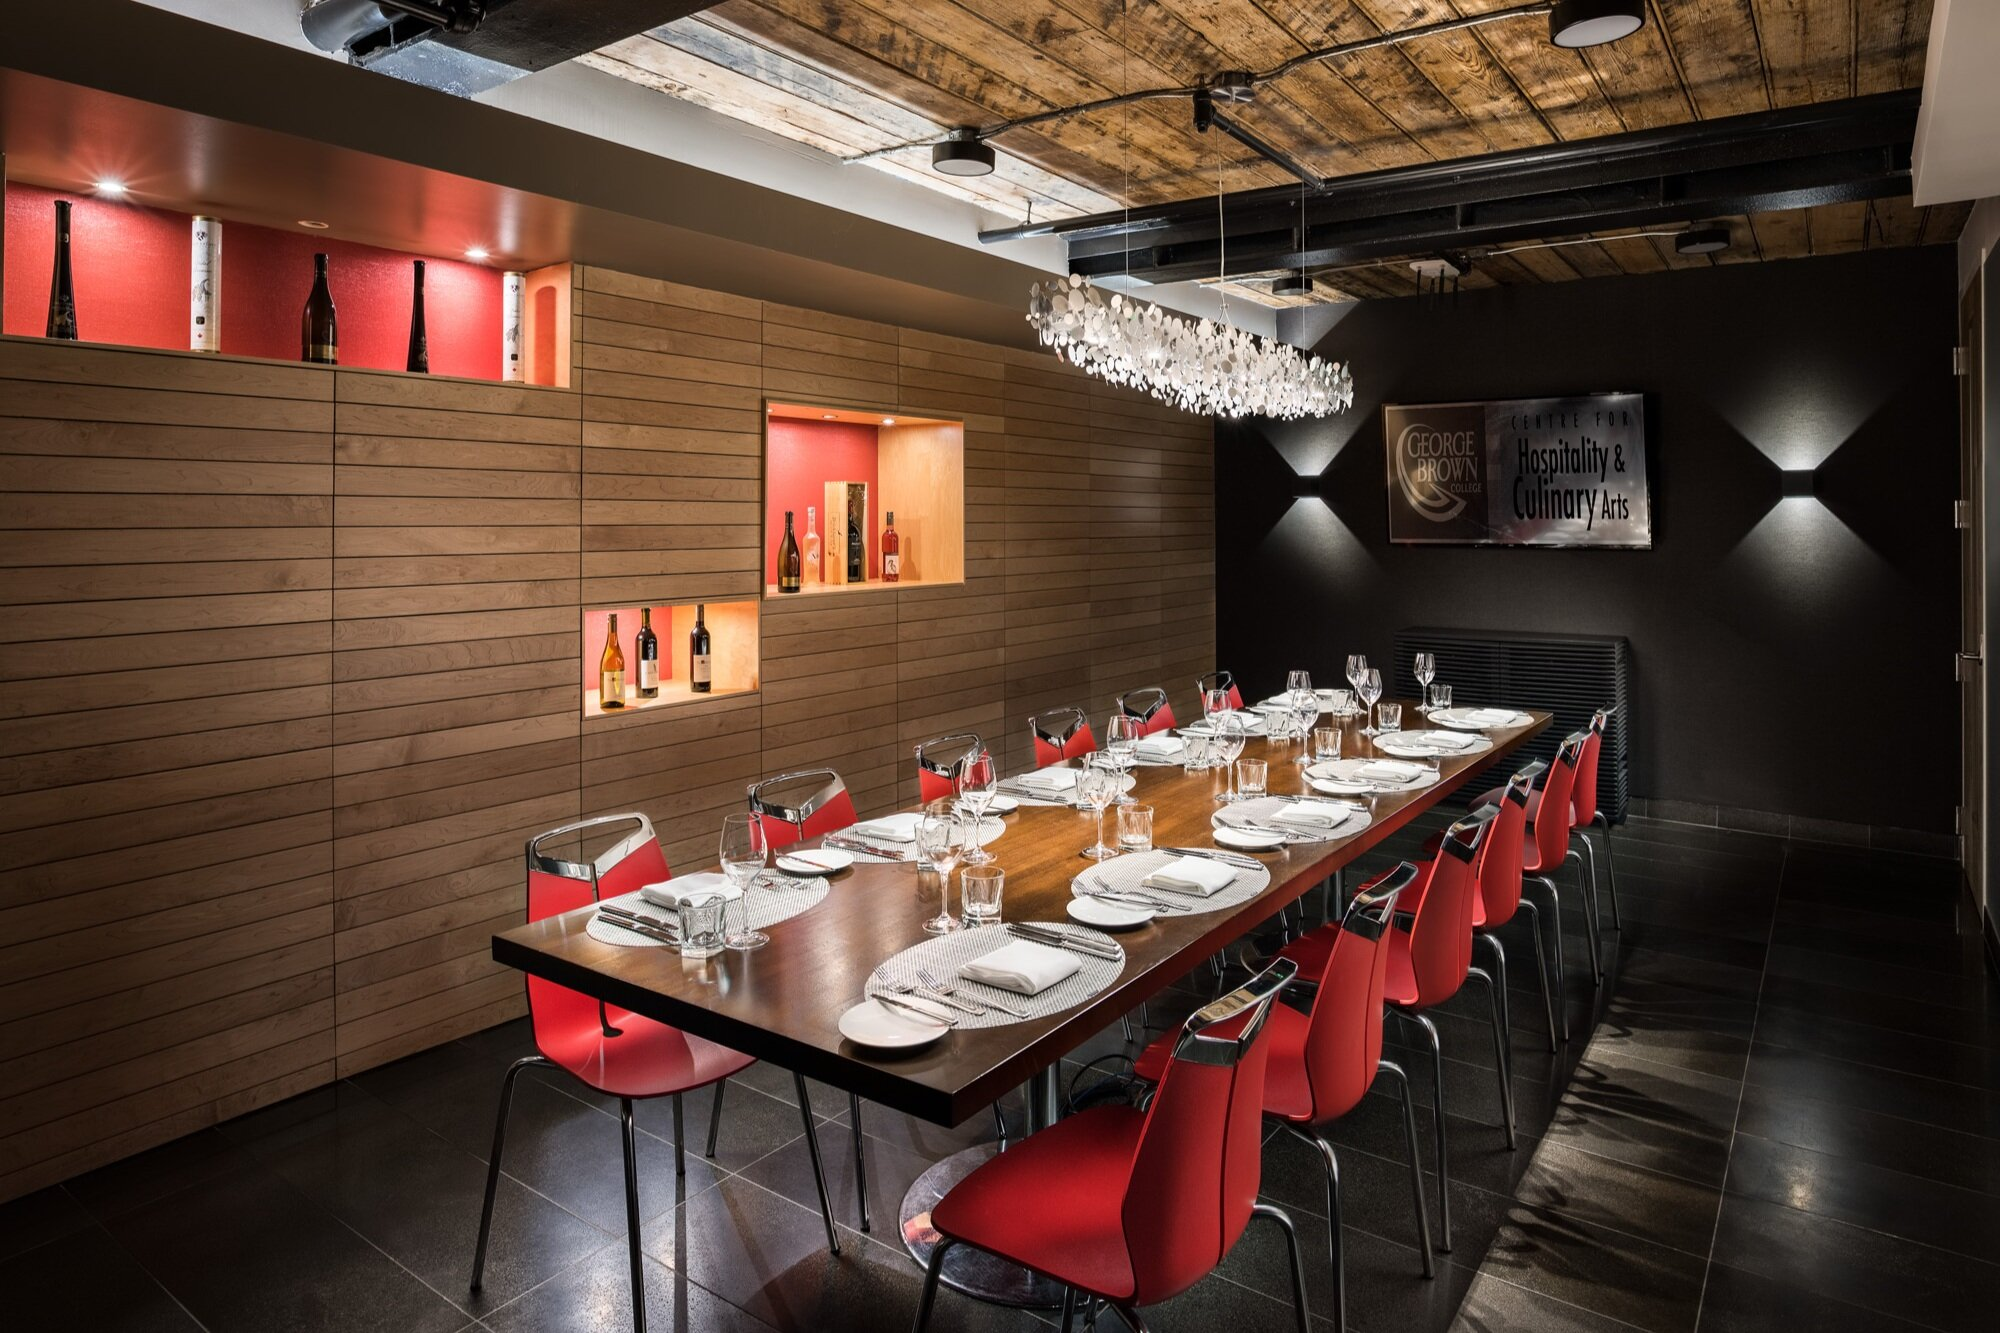 The Private Dining Room at The Restaurant at The Centre for Hospitality & Culinary Arts at George Brown College